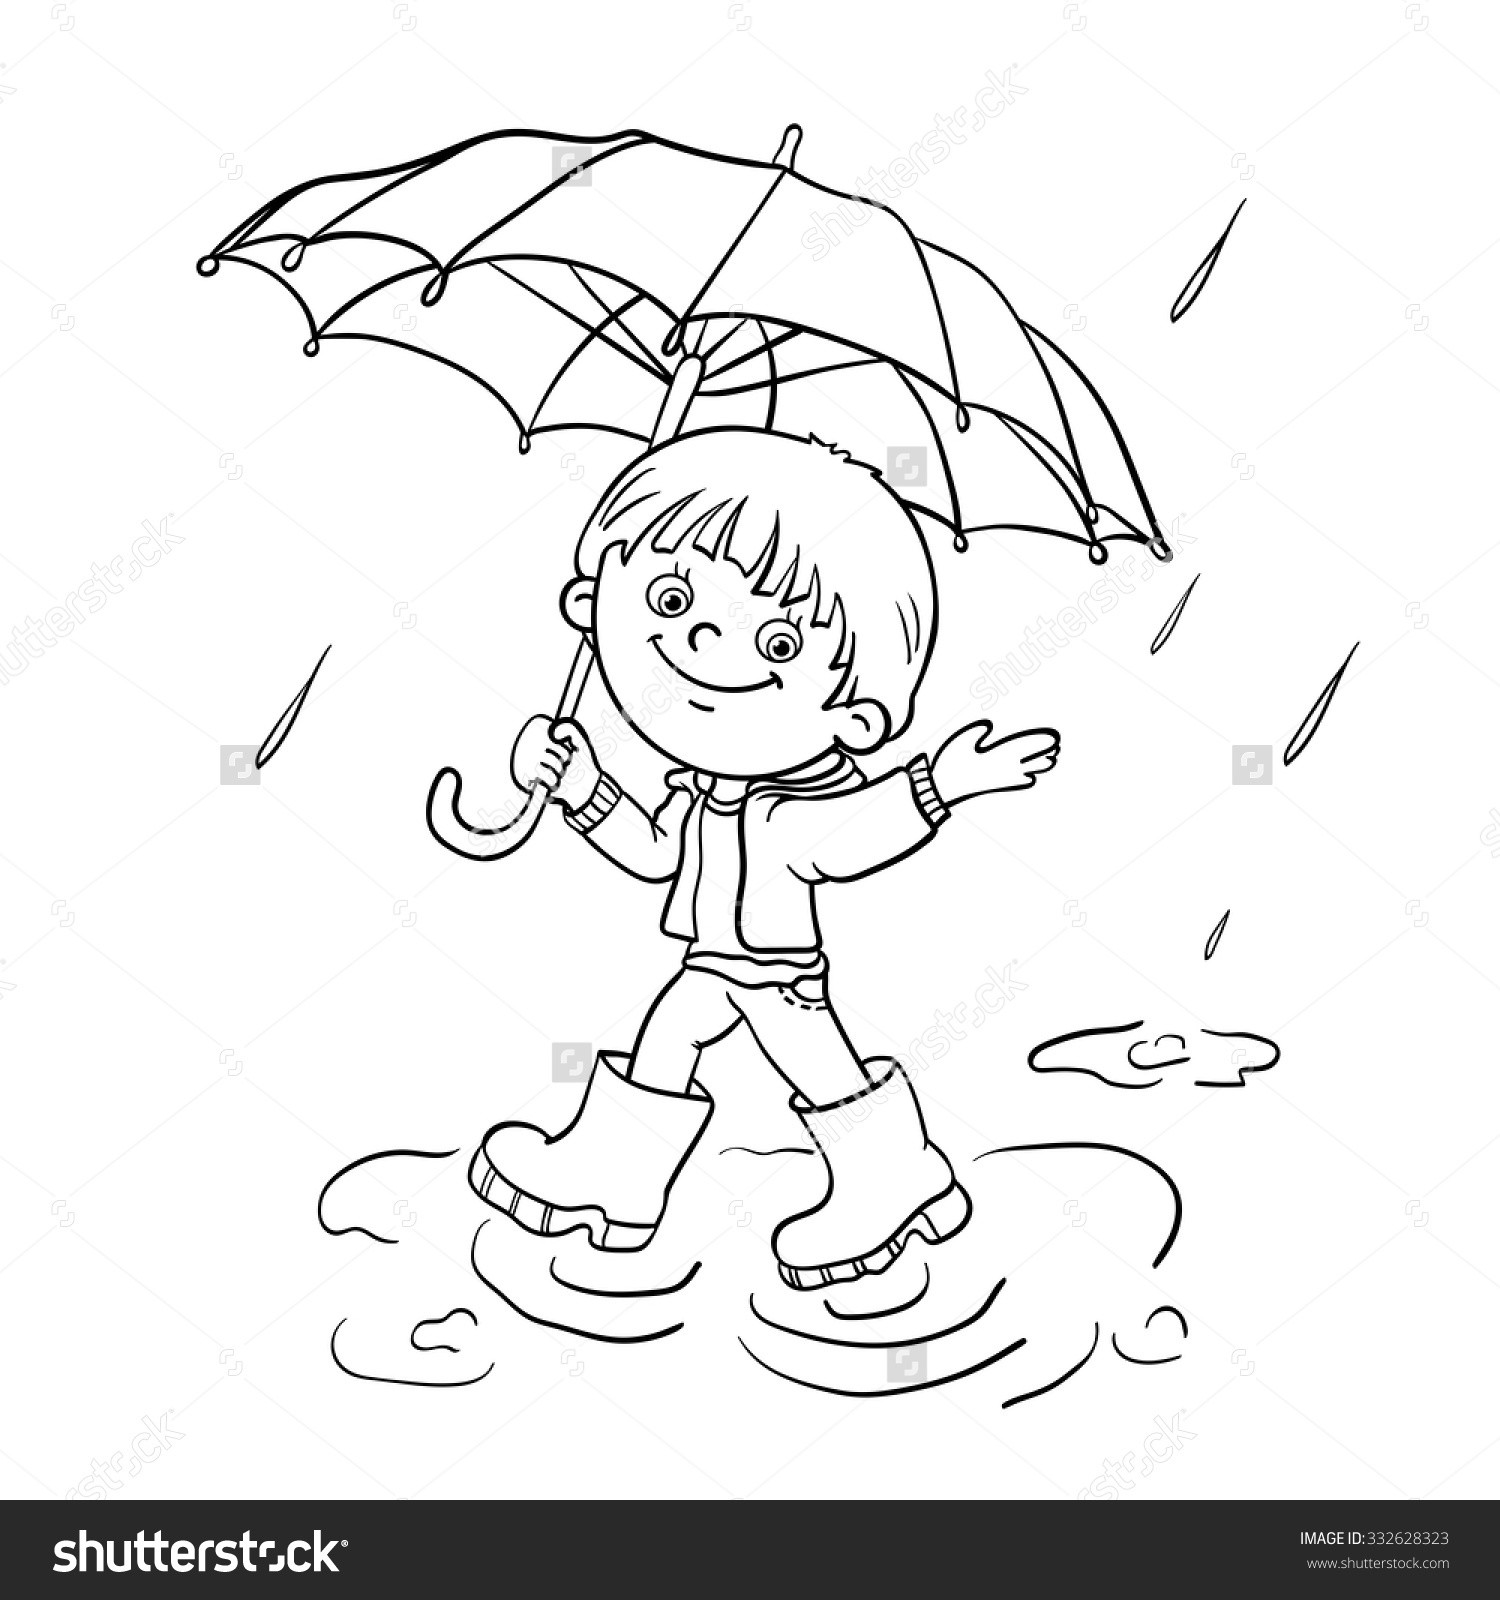 Rain Umbrella Drawing At Getdrawings